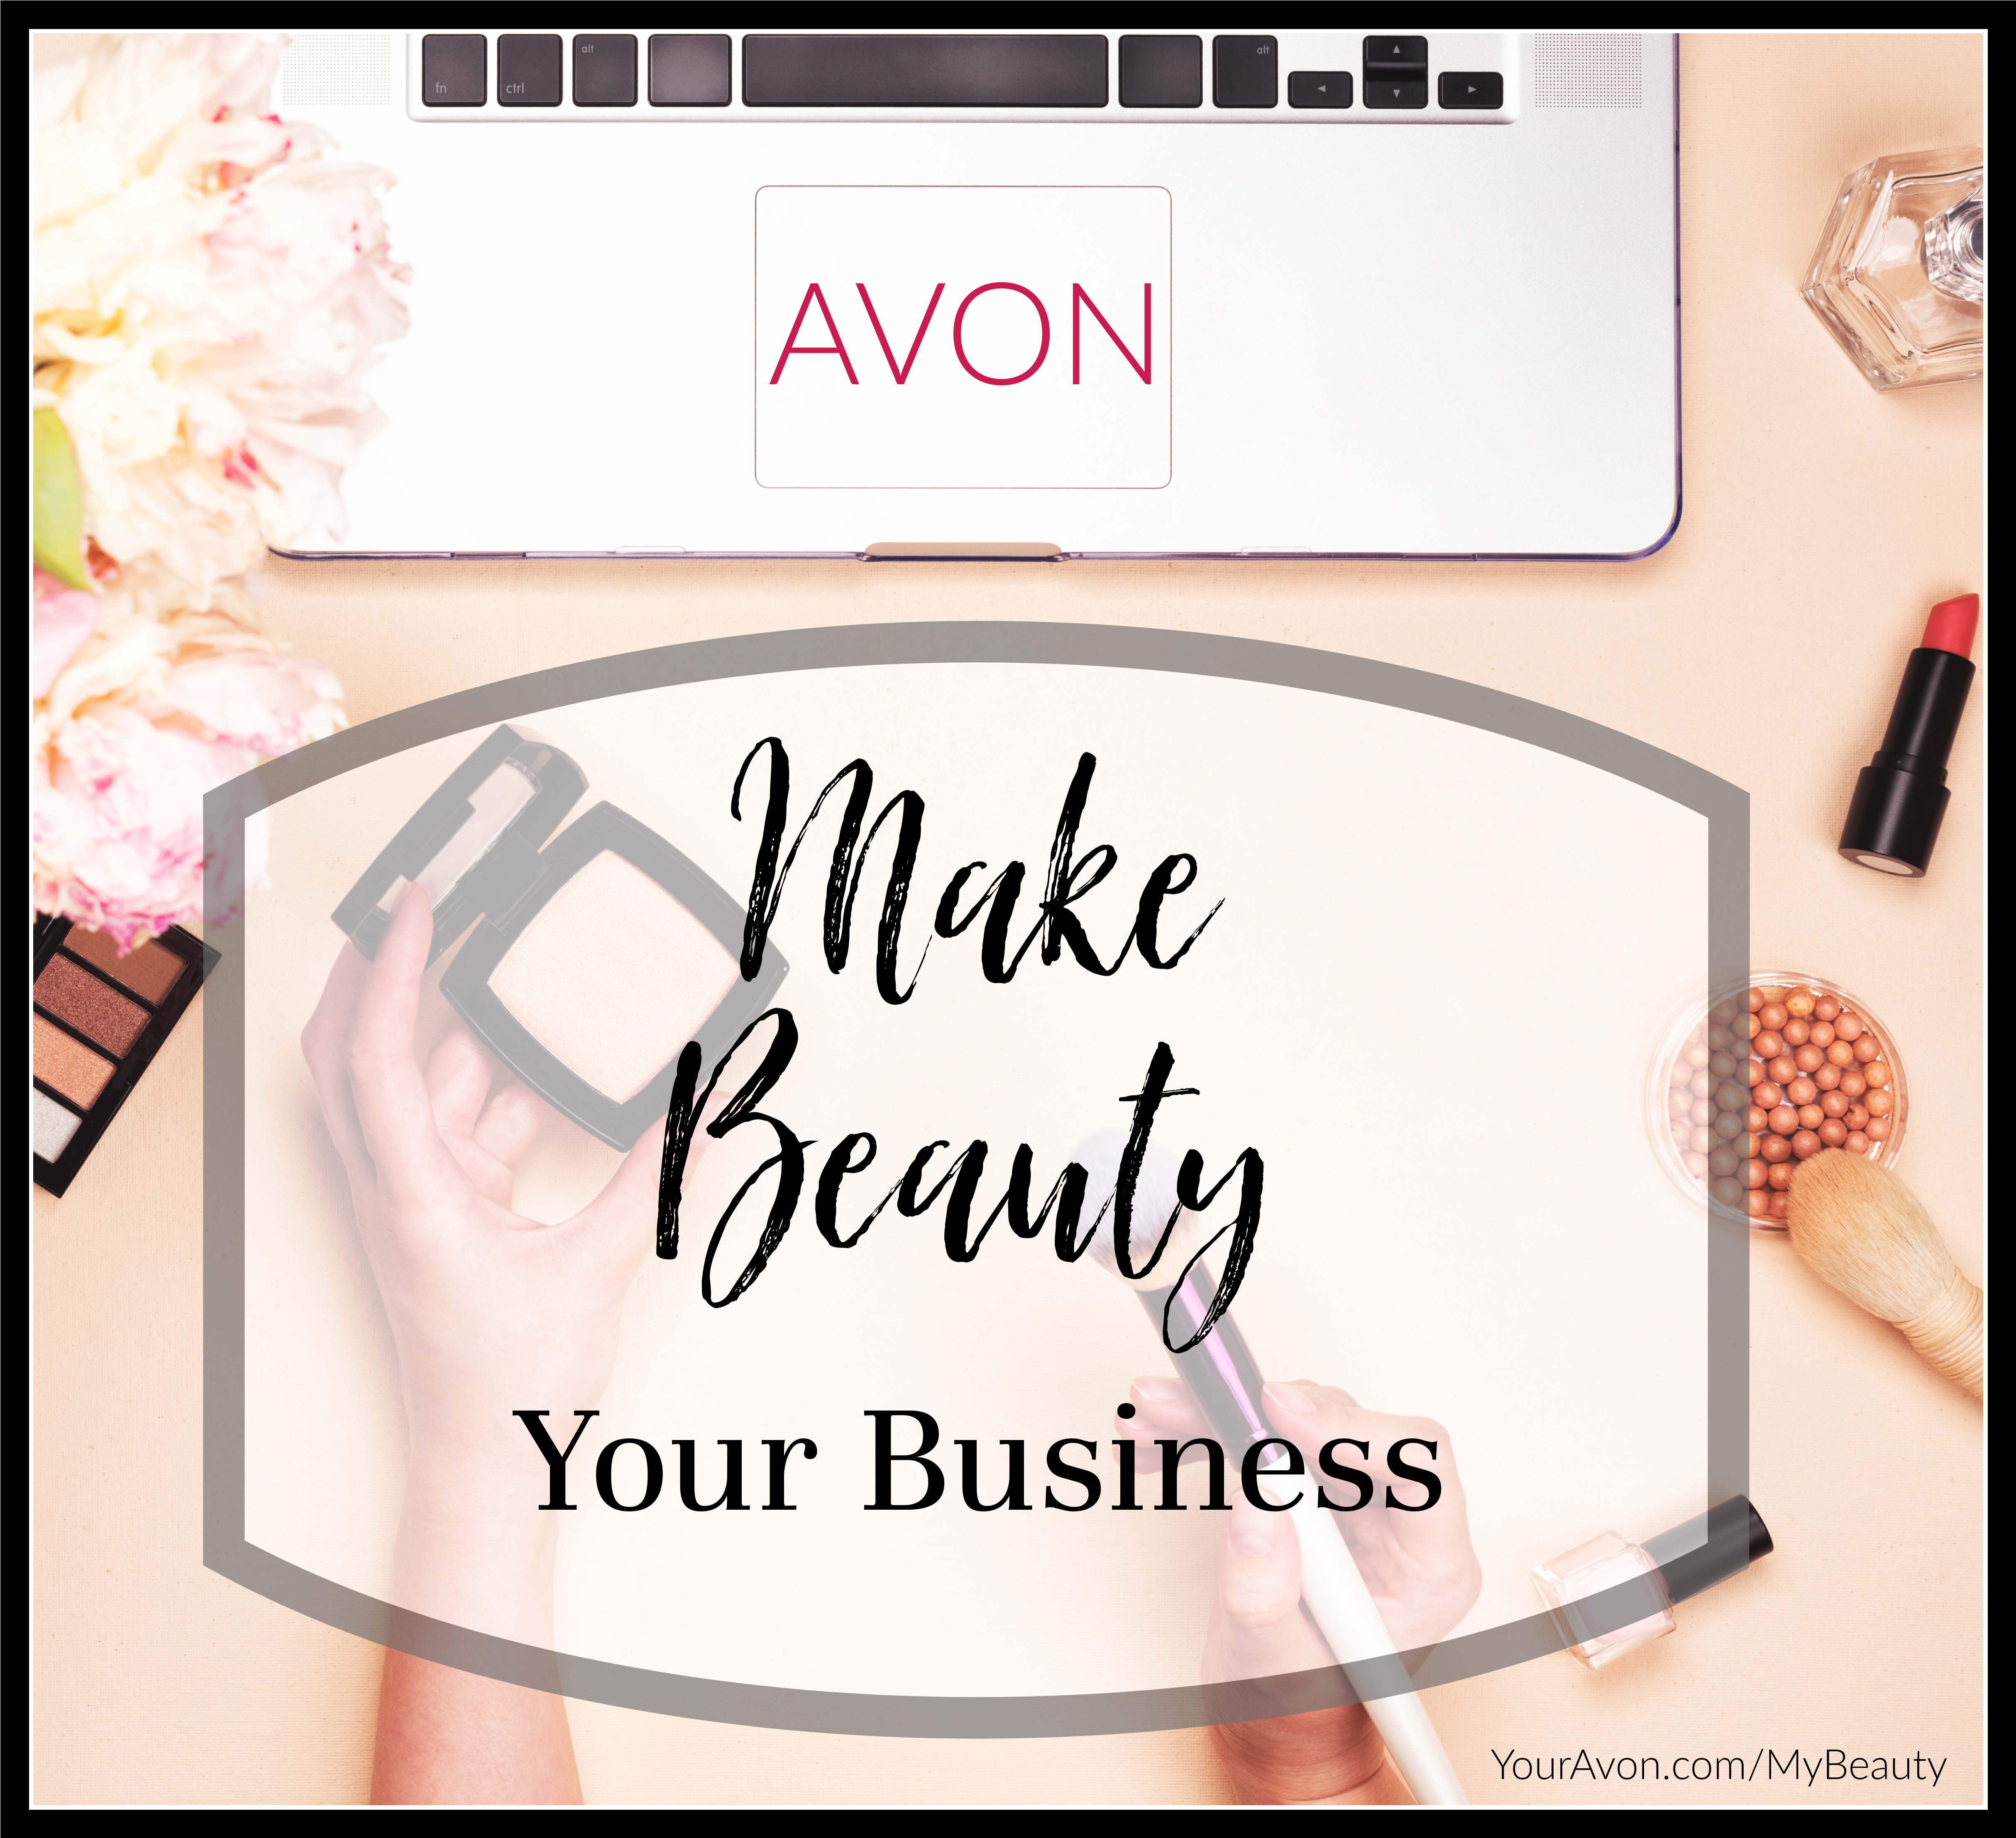 Sign up to join Avon